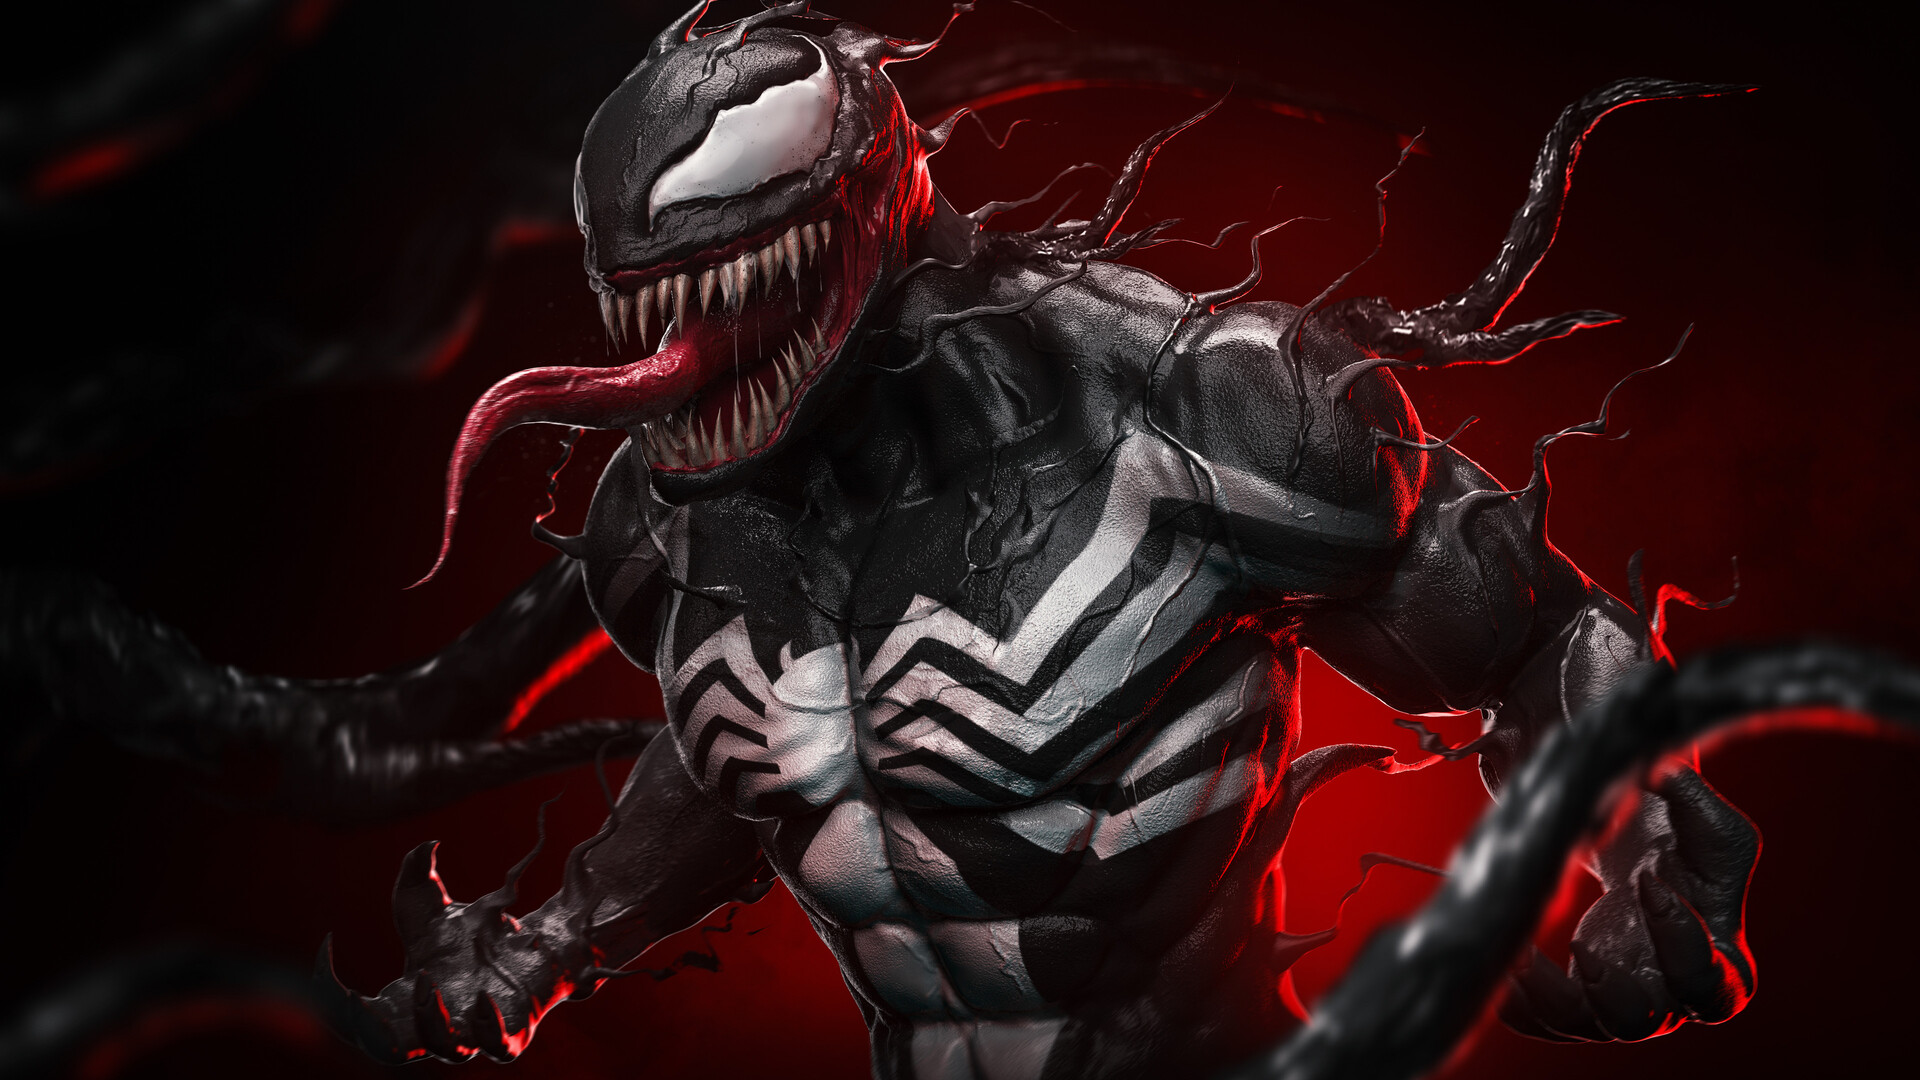 1920x1080 Venom 4k 2020 Artwork Laptop Full HD 1080P HD 4k ...